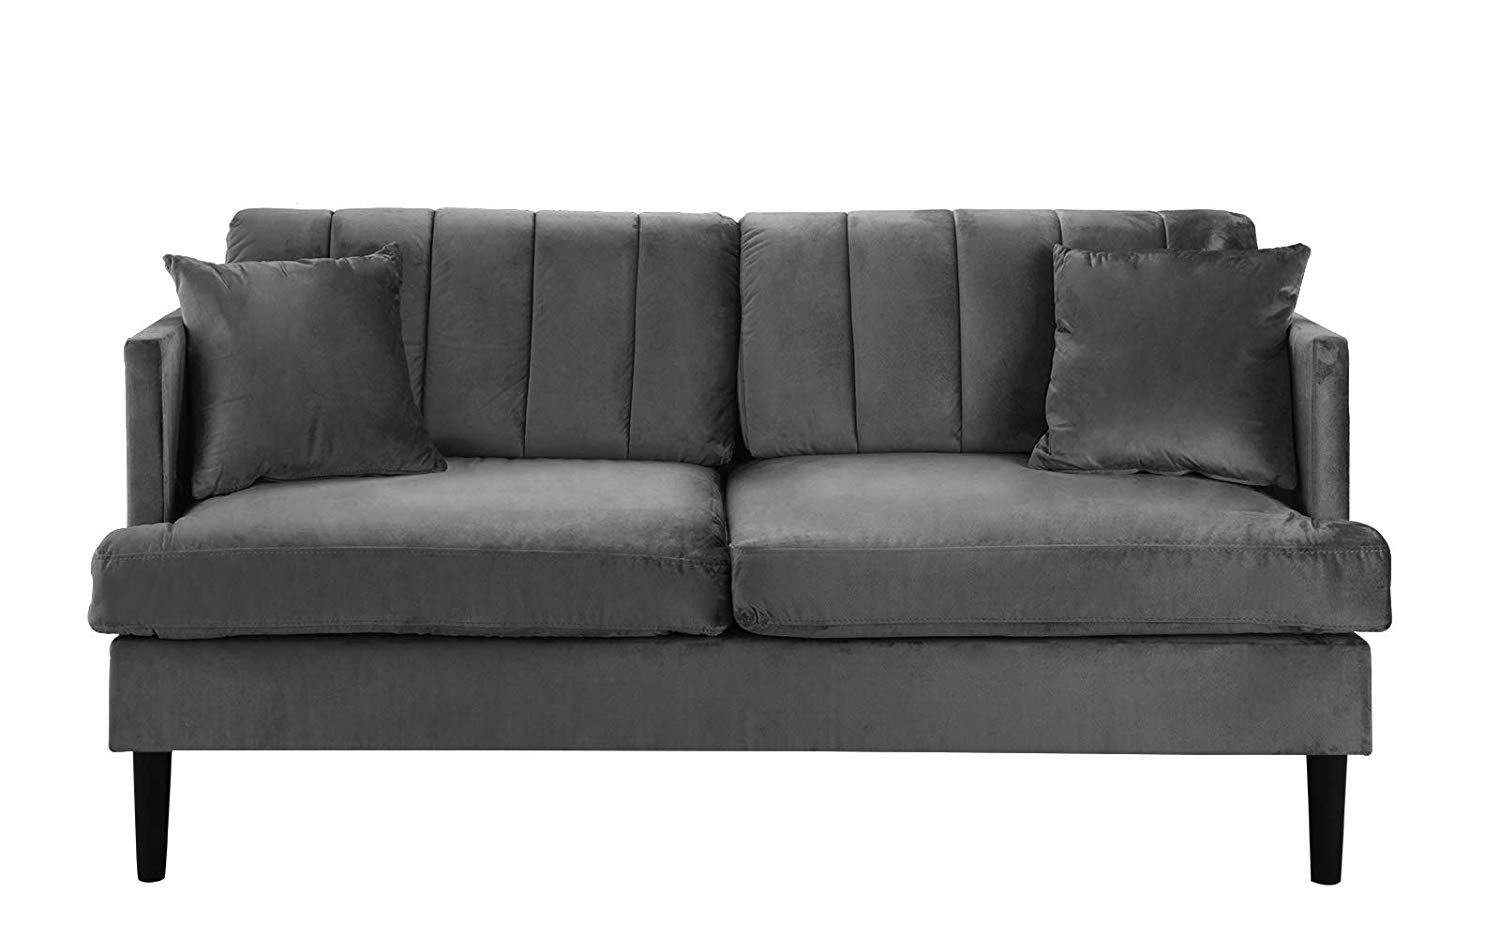 Details about mid century large loveseat sofa velvet upholstered living room couch grey